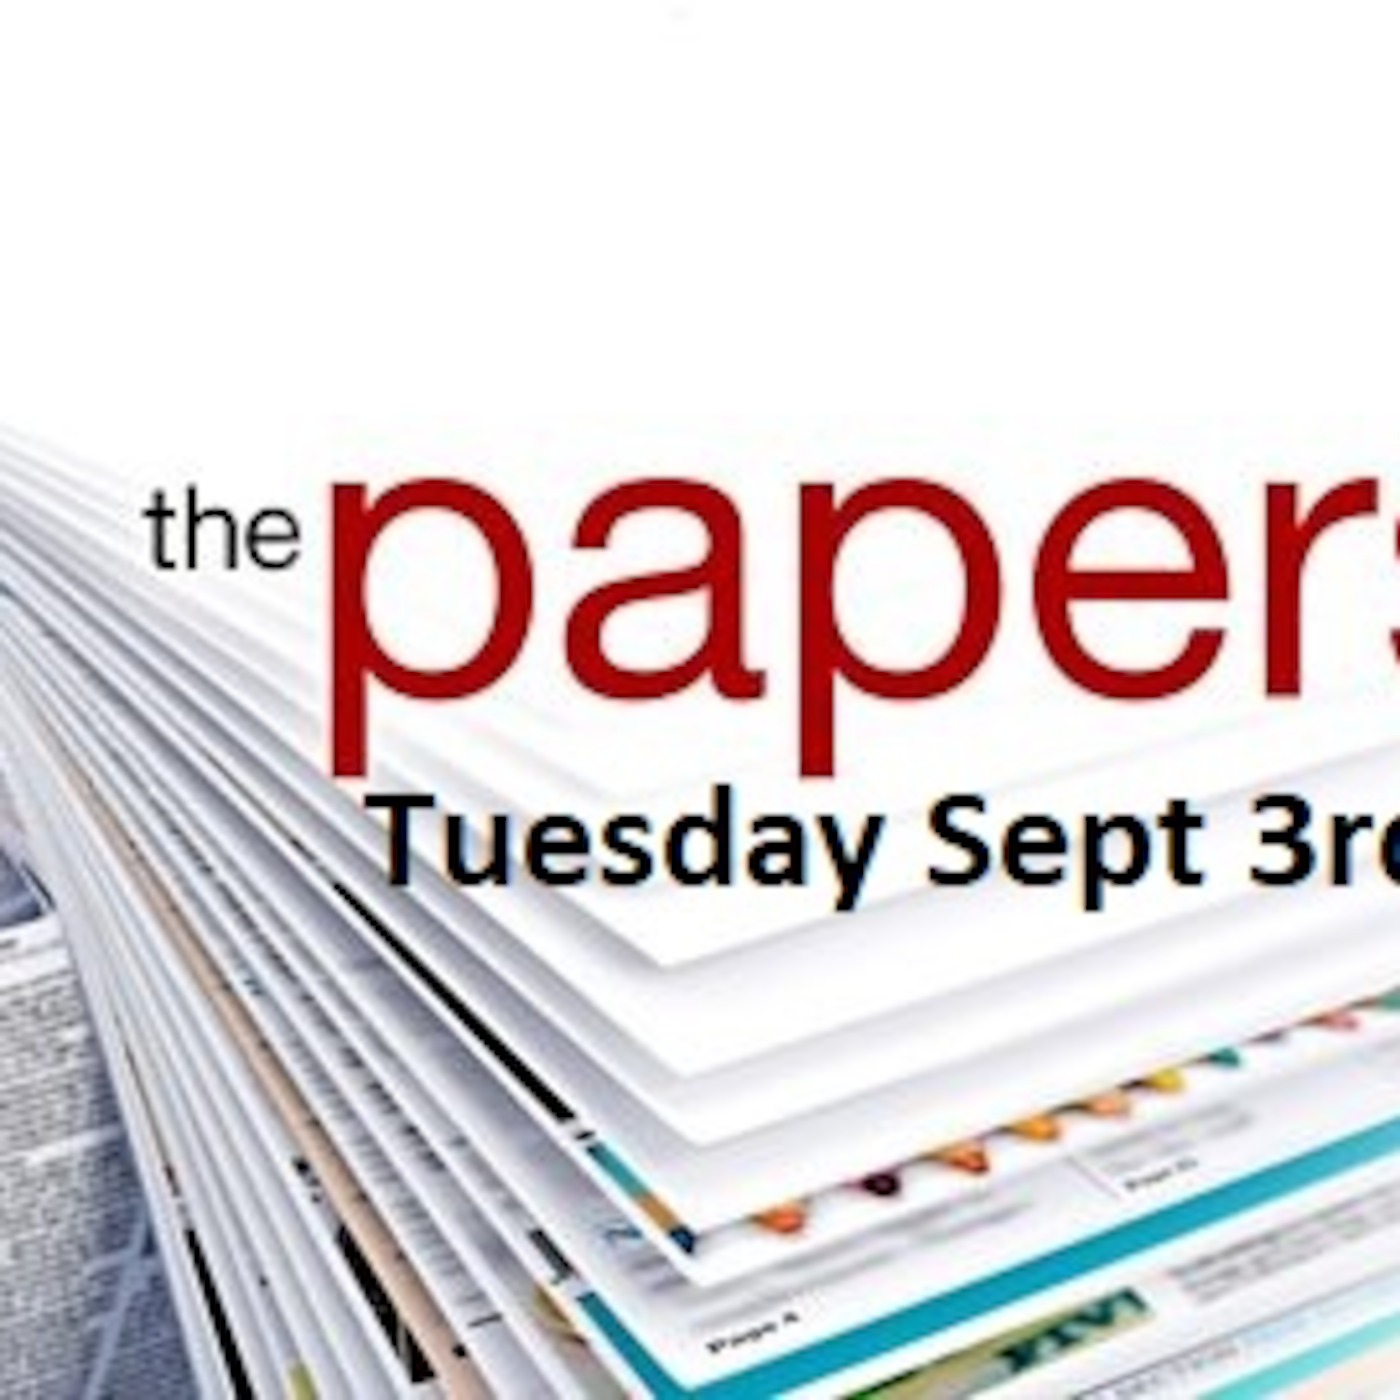 Richie Reviews The UK Papers Tuesday September 3rd 2019 The